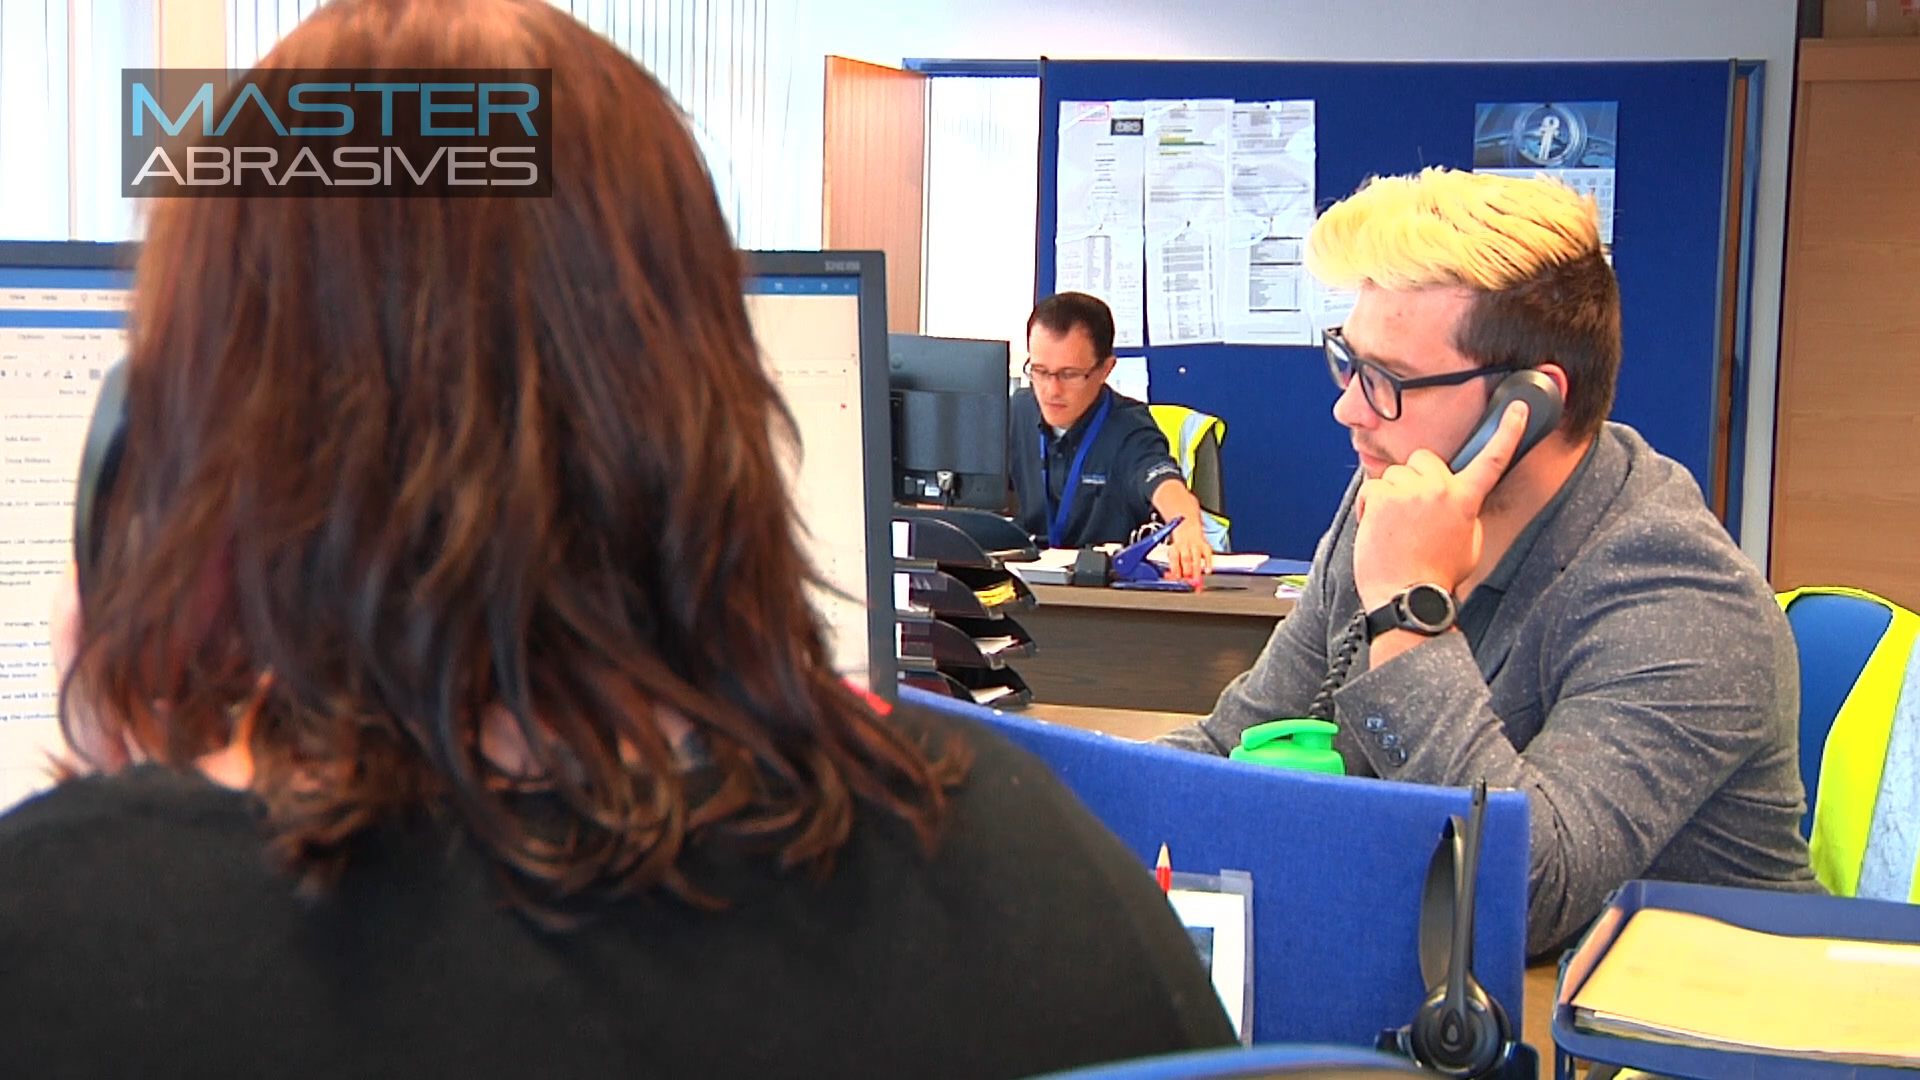 The video features some employees from the company's different departments, including the Customer Service team